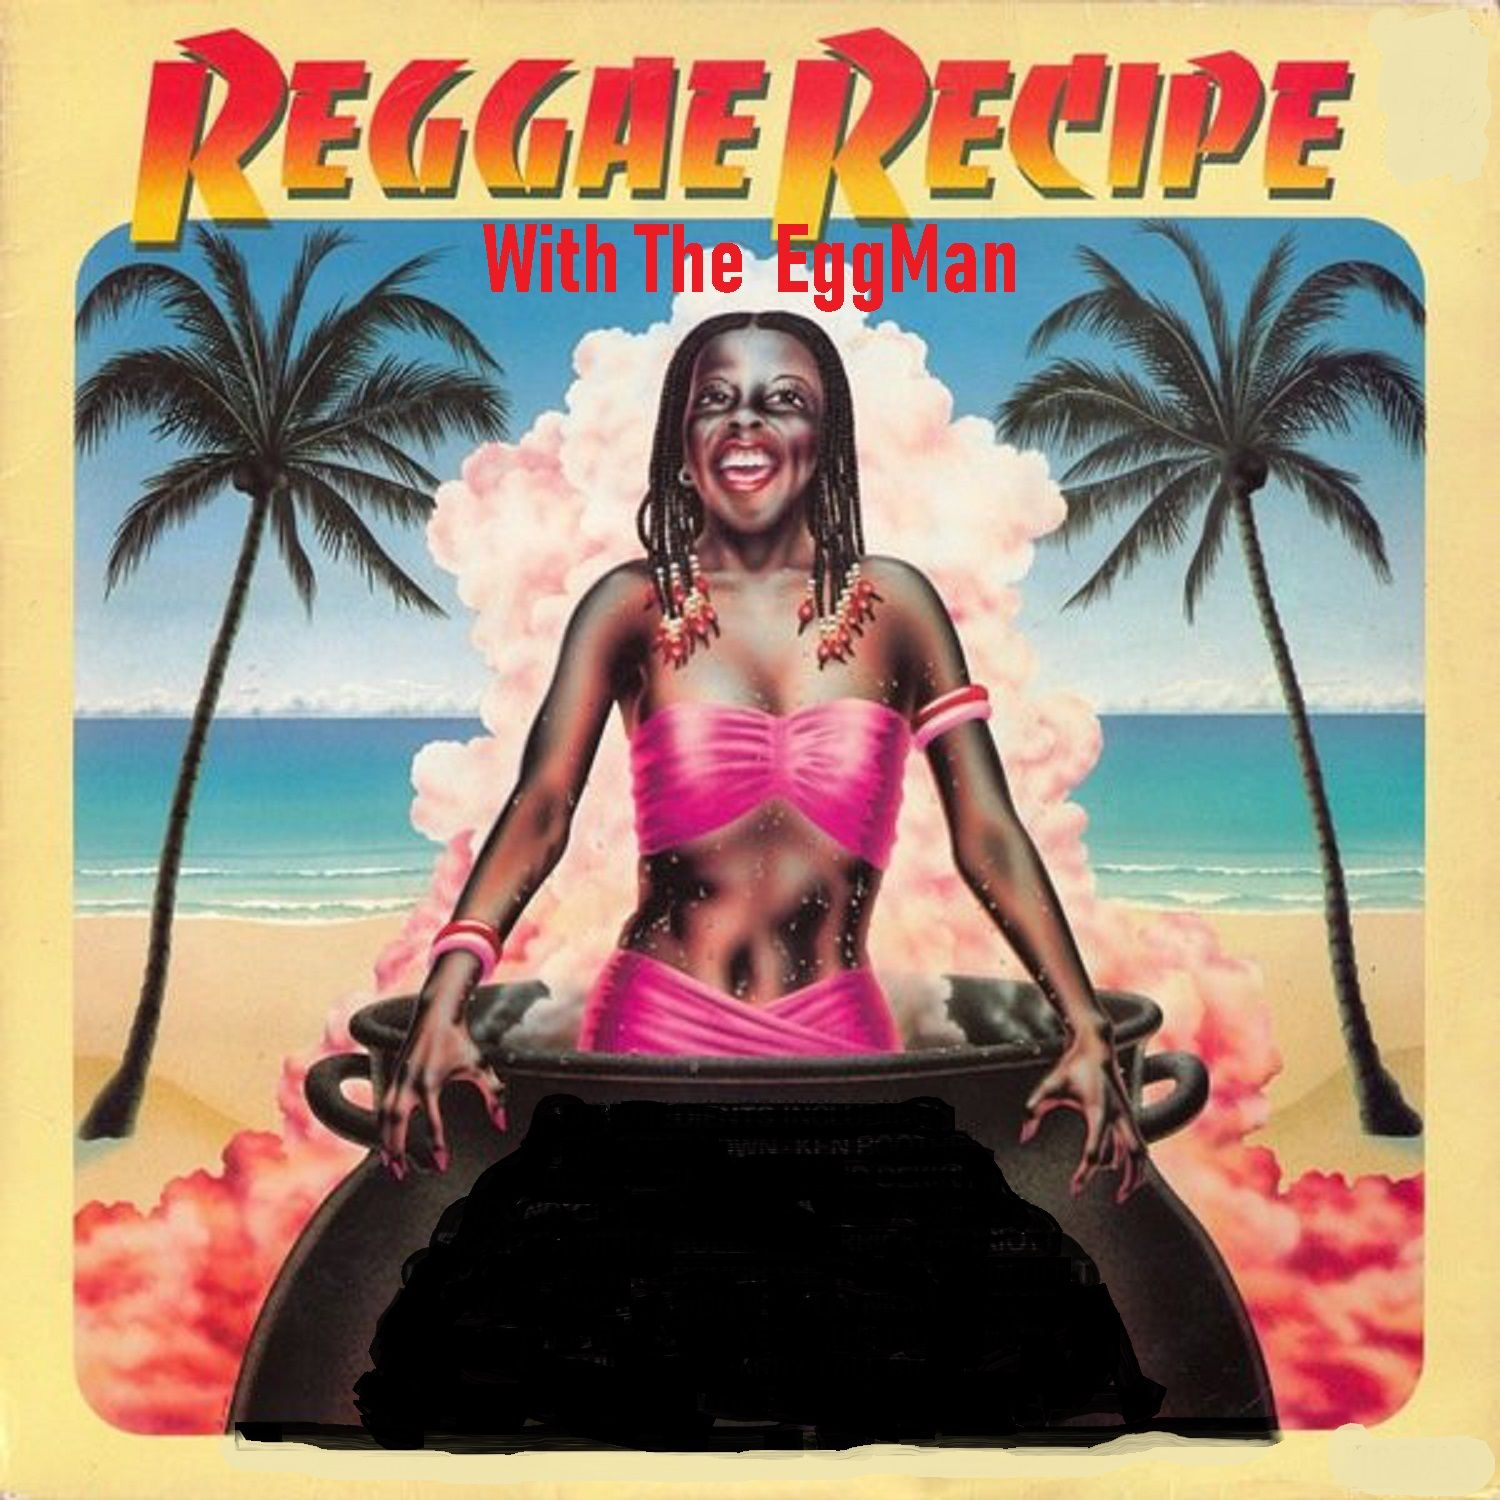 REGGAE RECIPE with the EGGMAN